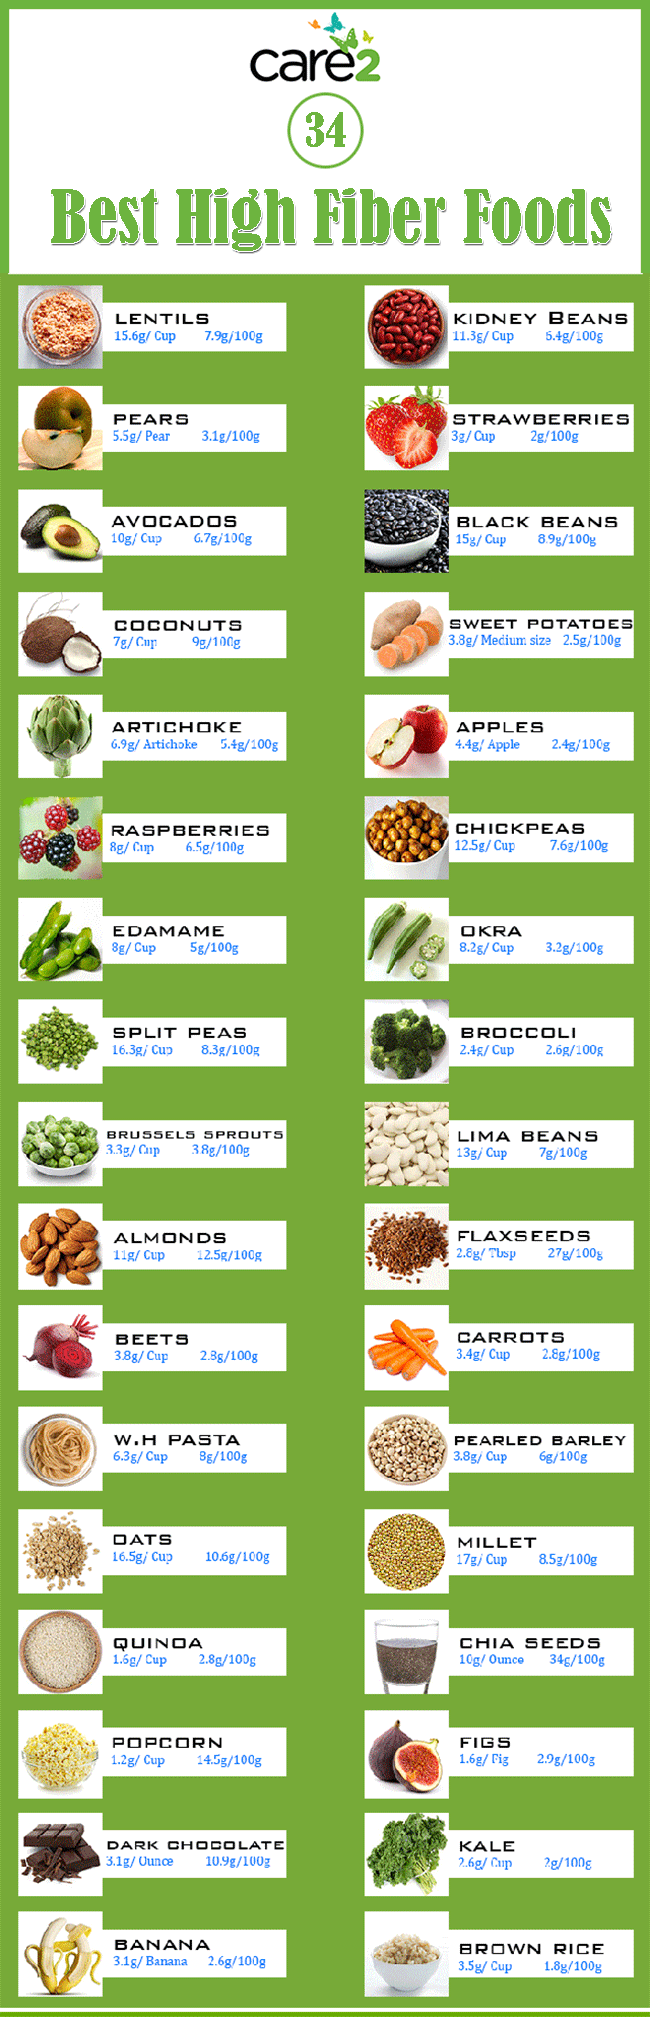 Smart image with printable list of high fiber foods